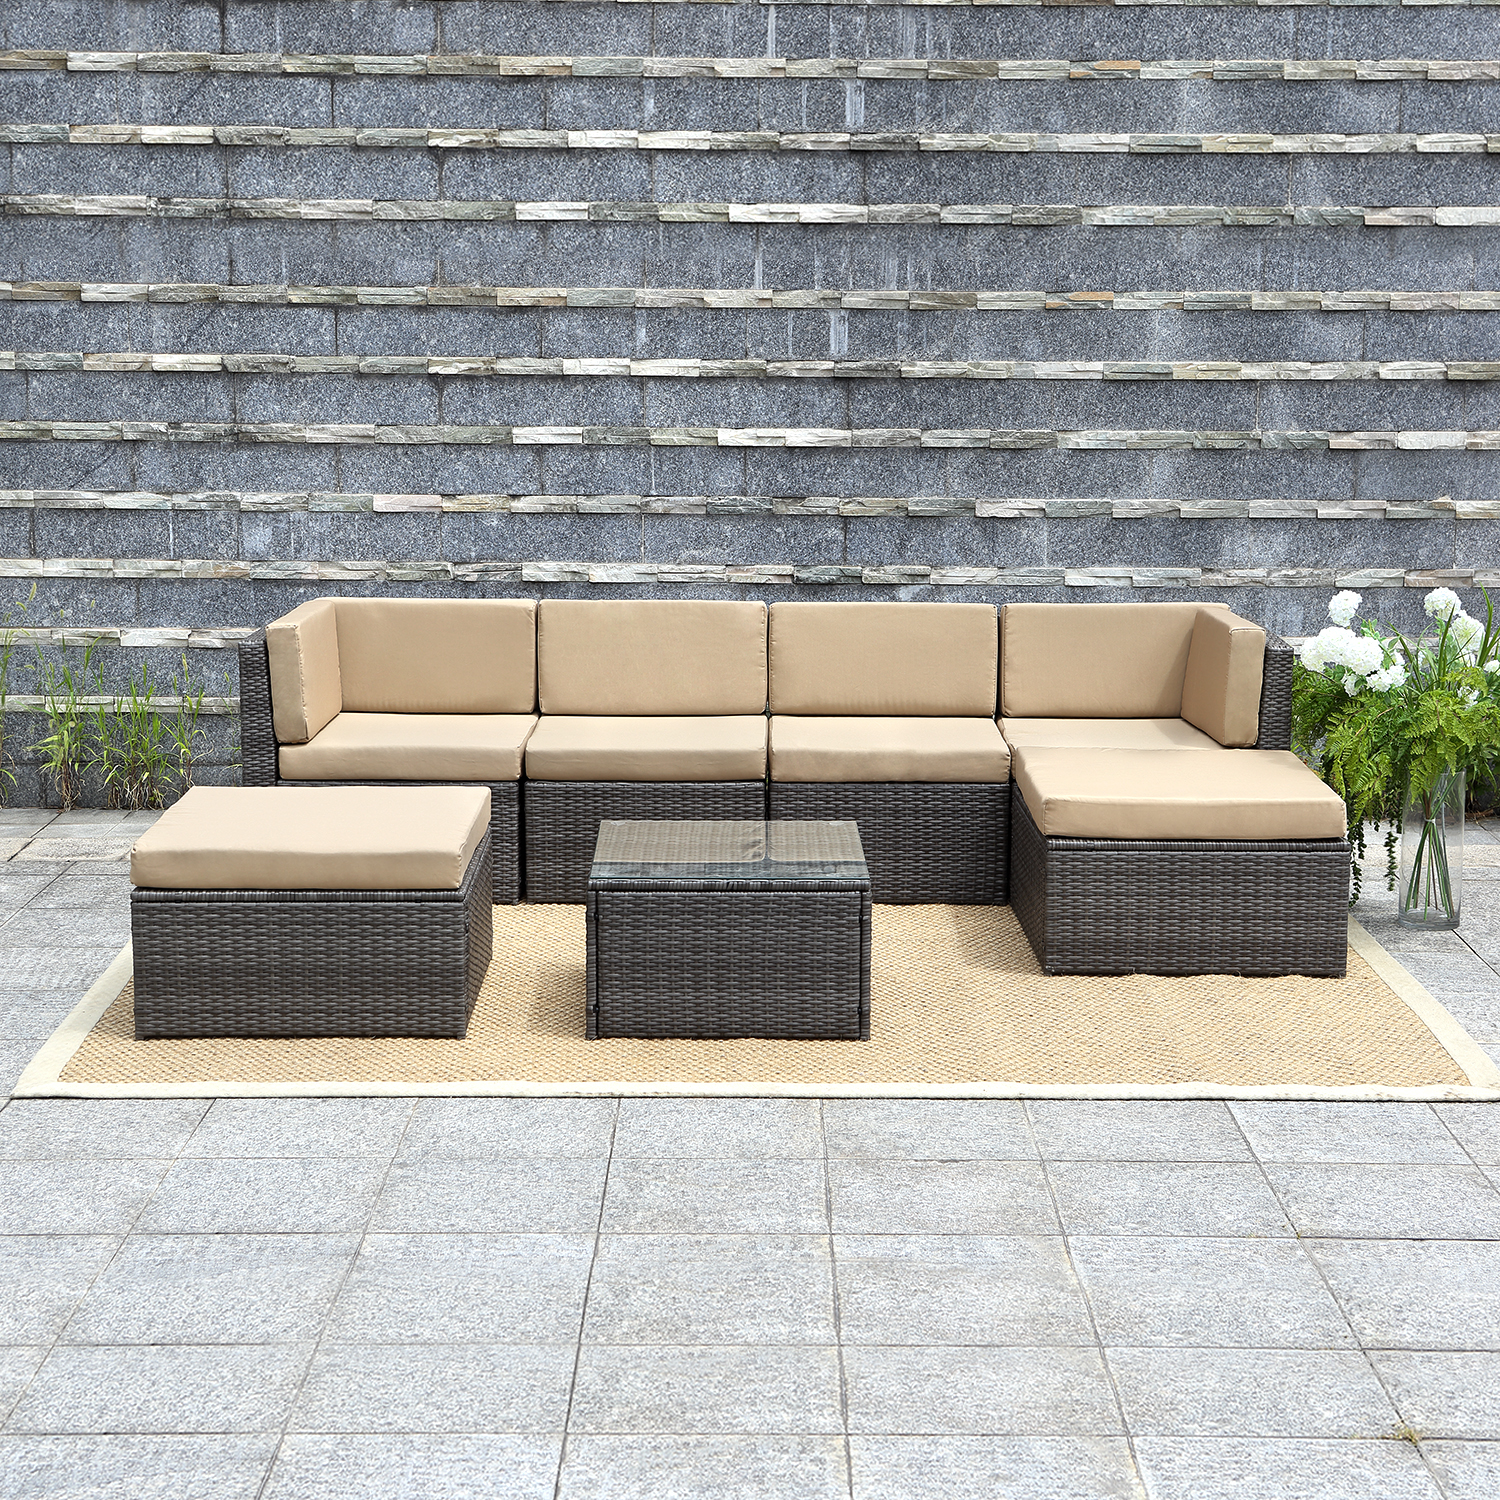 $50 Off 7 Piece Outdoor Wicker Sofa Wisteria Lane Patio Furniture Set, $549.99 Now